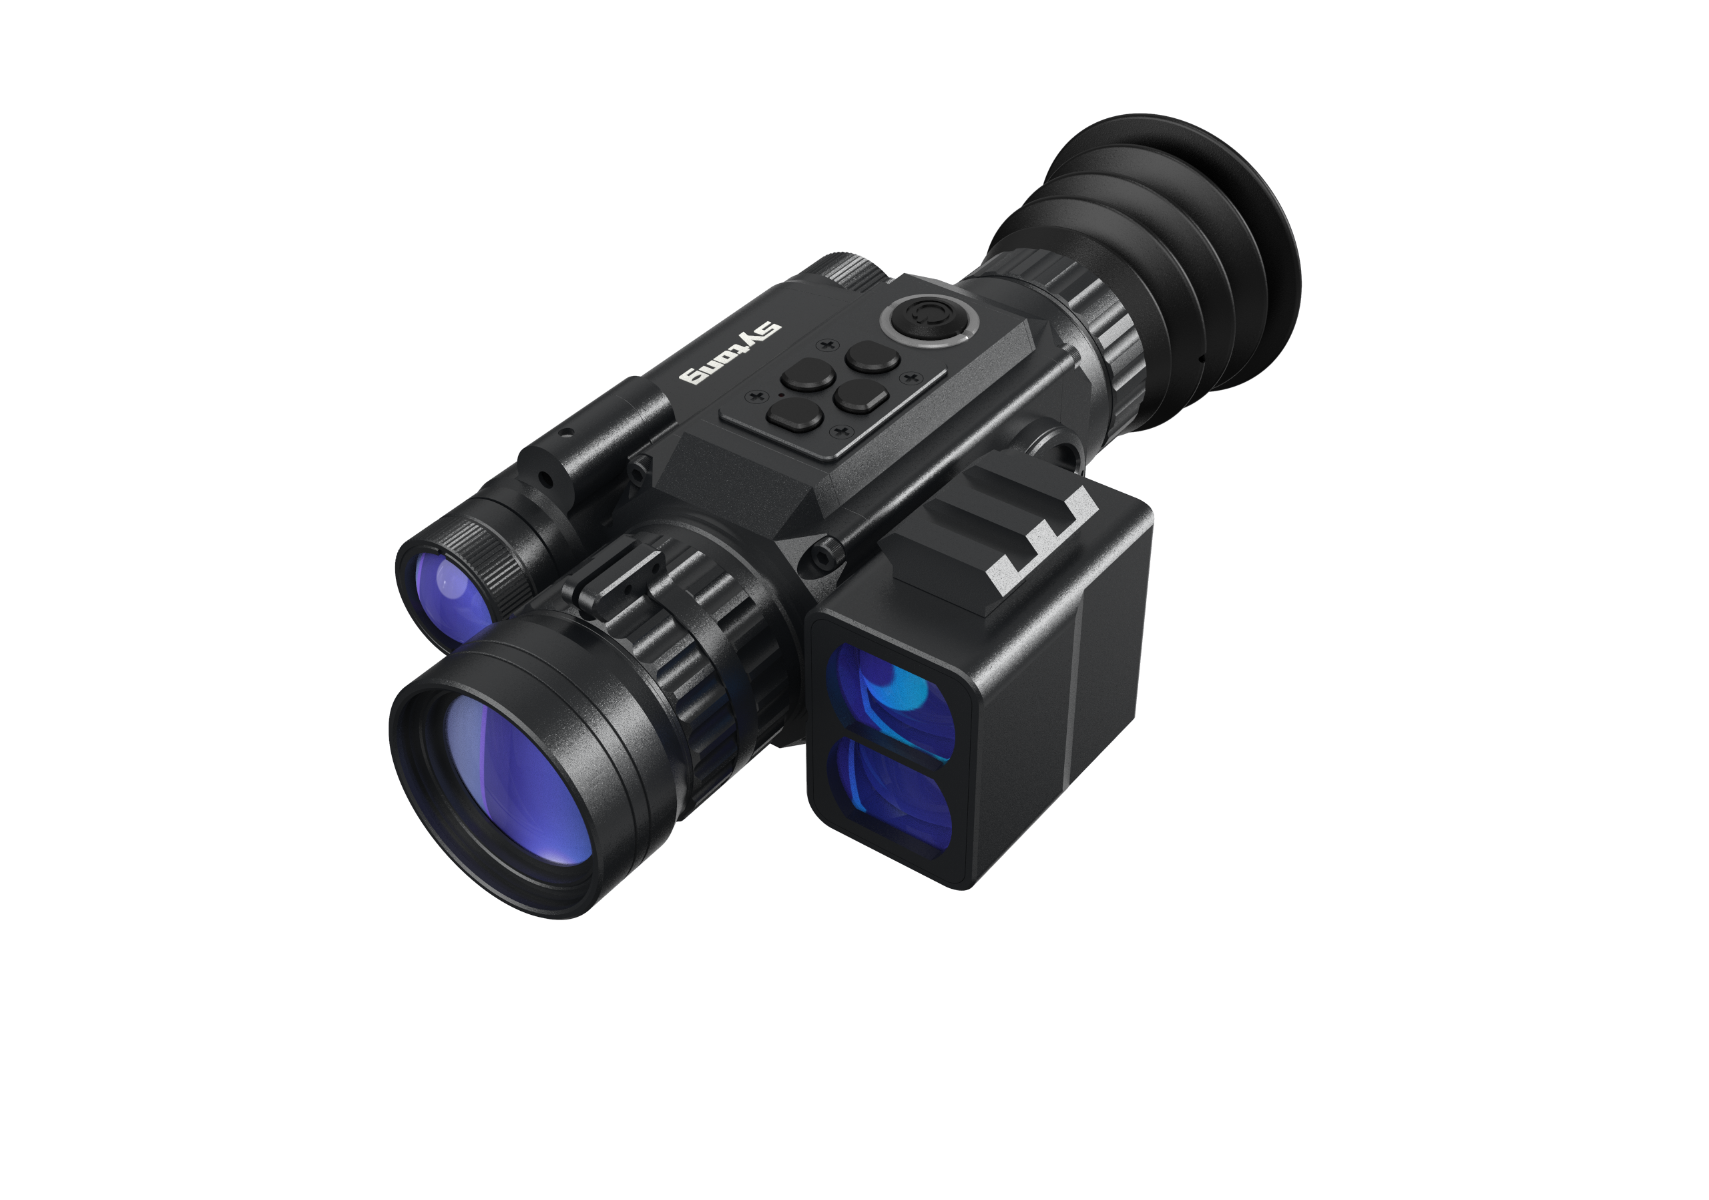 Sytong HT60LRF 3-8x Digital Night Vision Rifle Scope with Laser Rangefinder